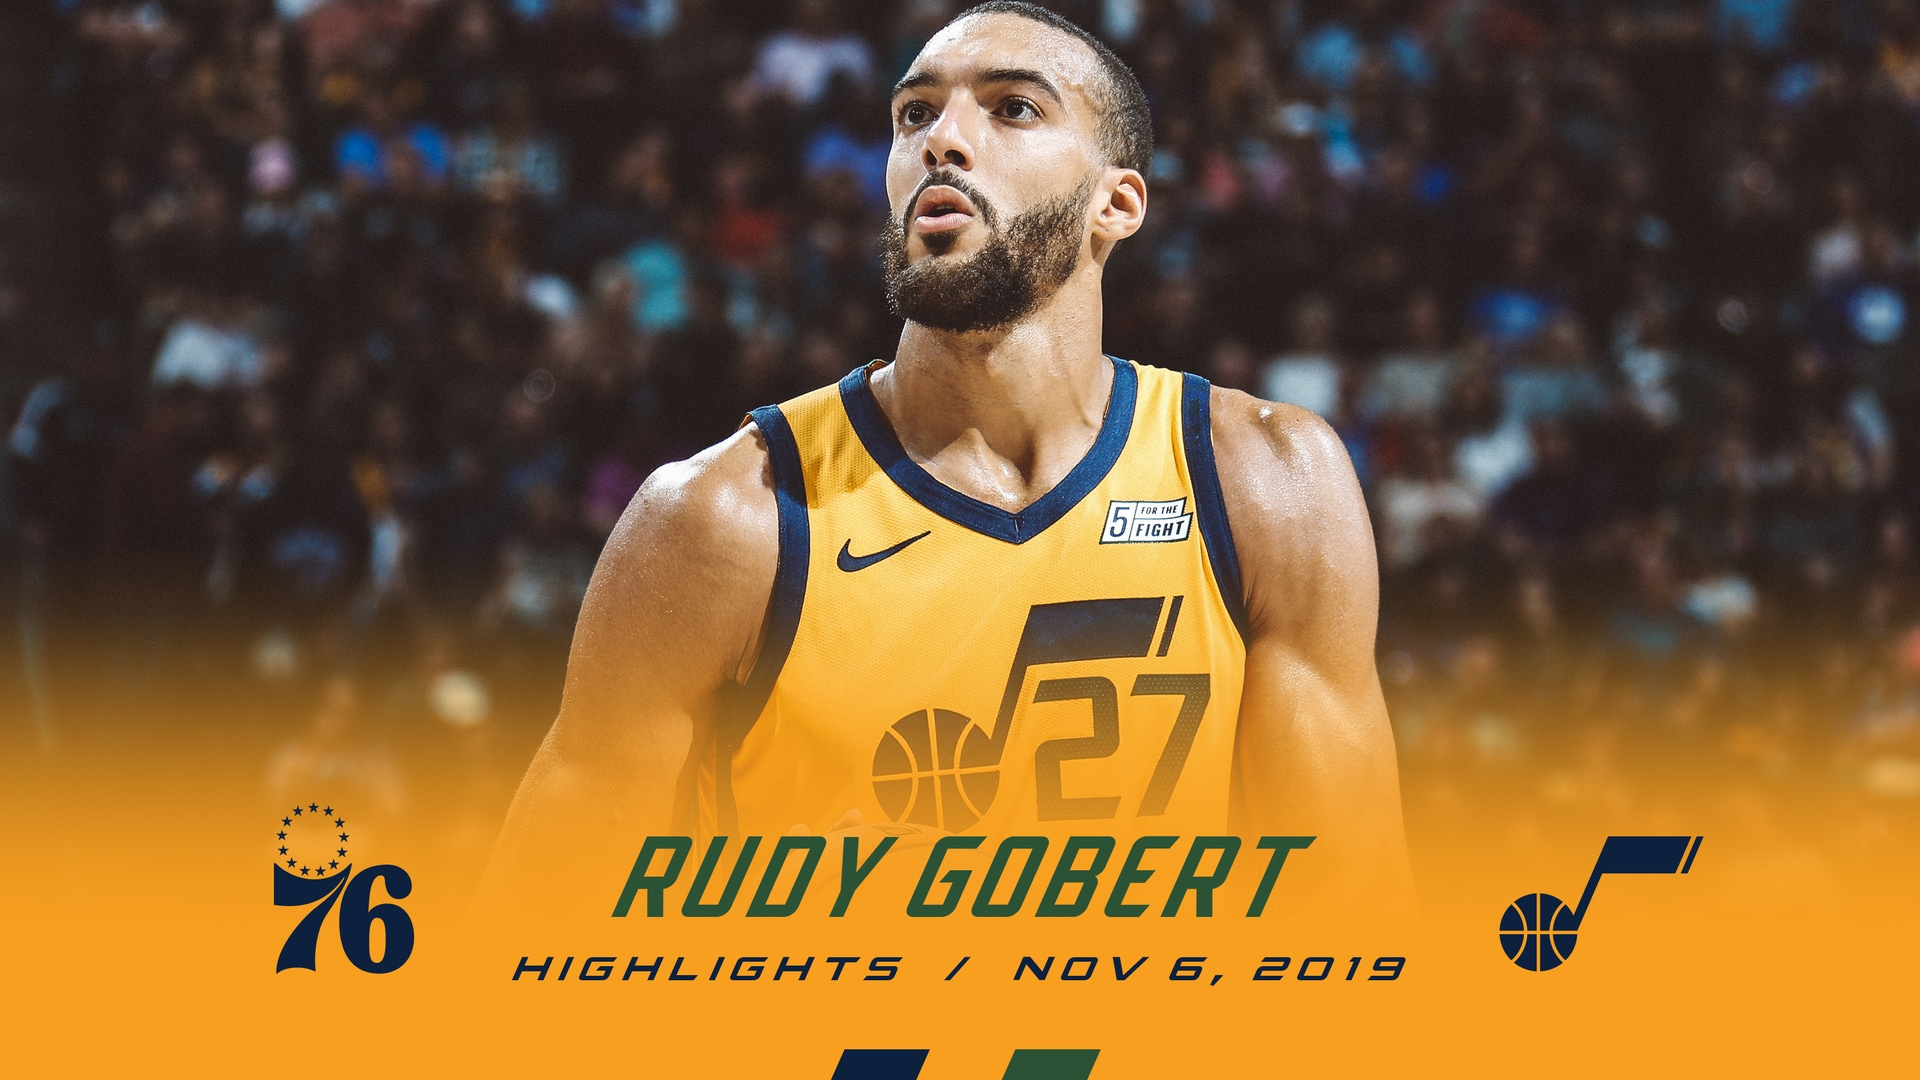 Highlights: Rudy Gobert—16 rebounds, 14 points, 3 assists